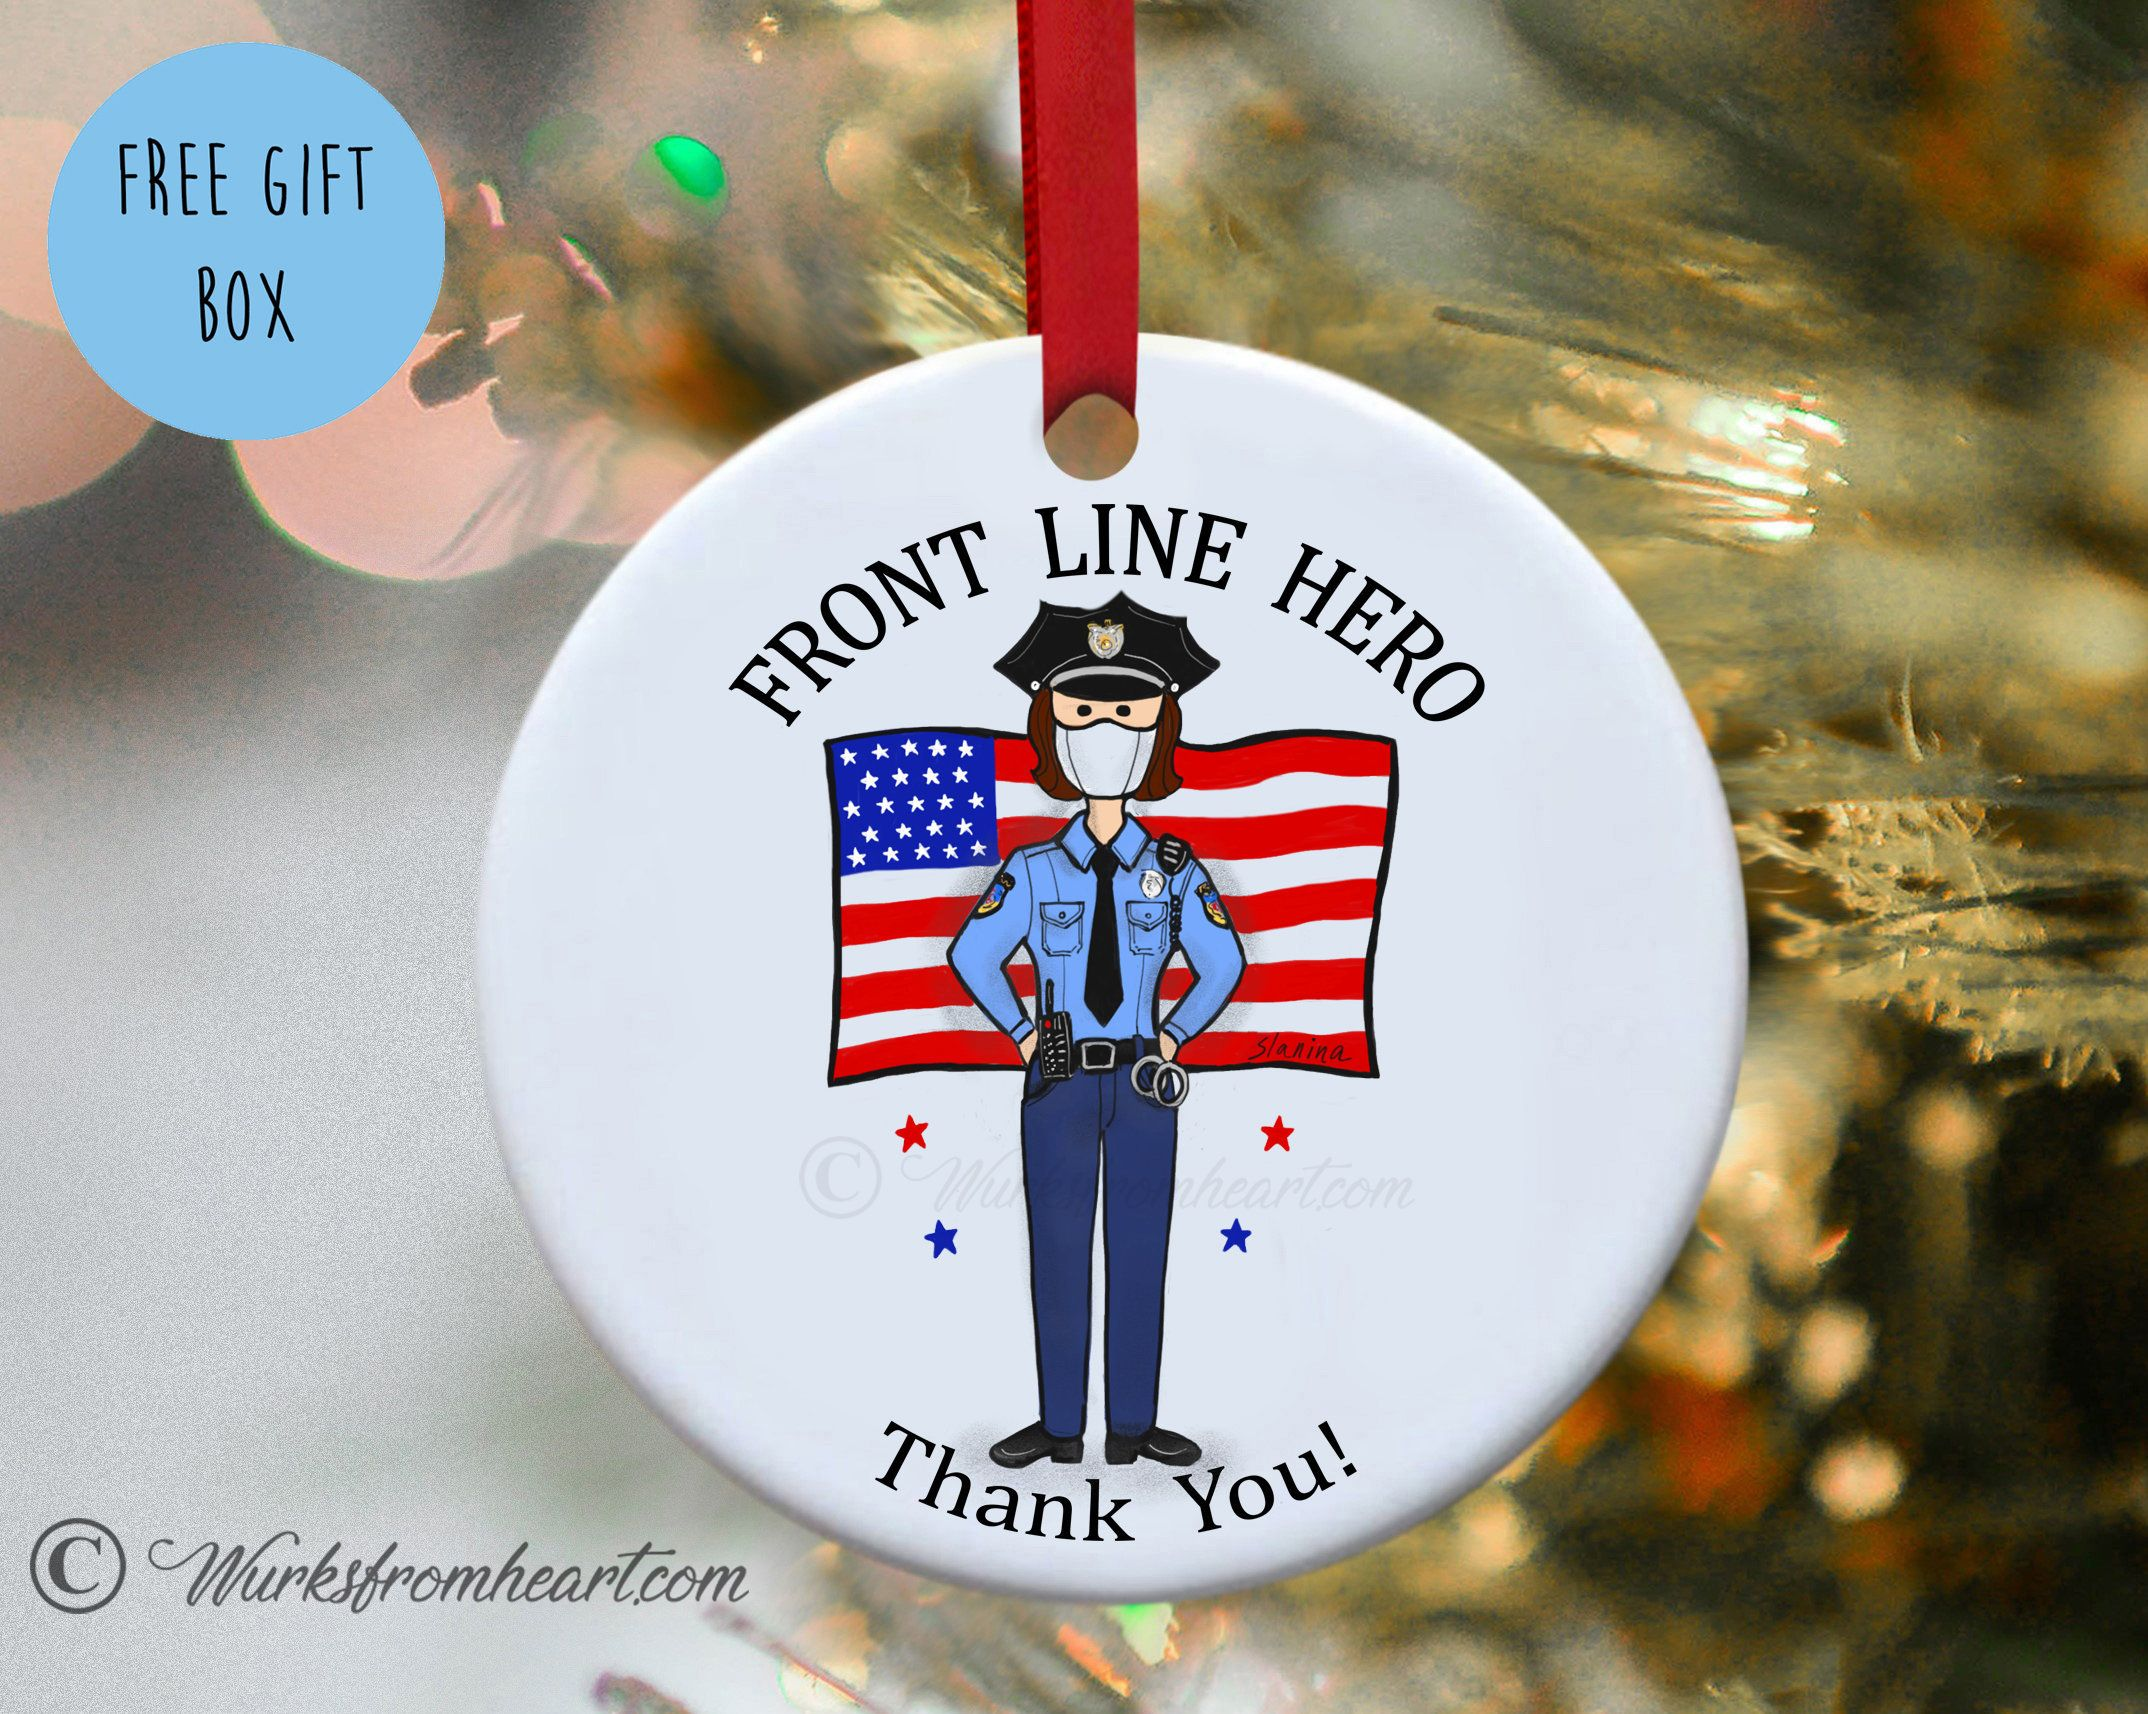 Gift for female police officer front line hero essential